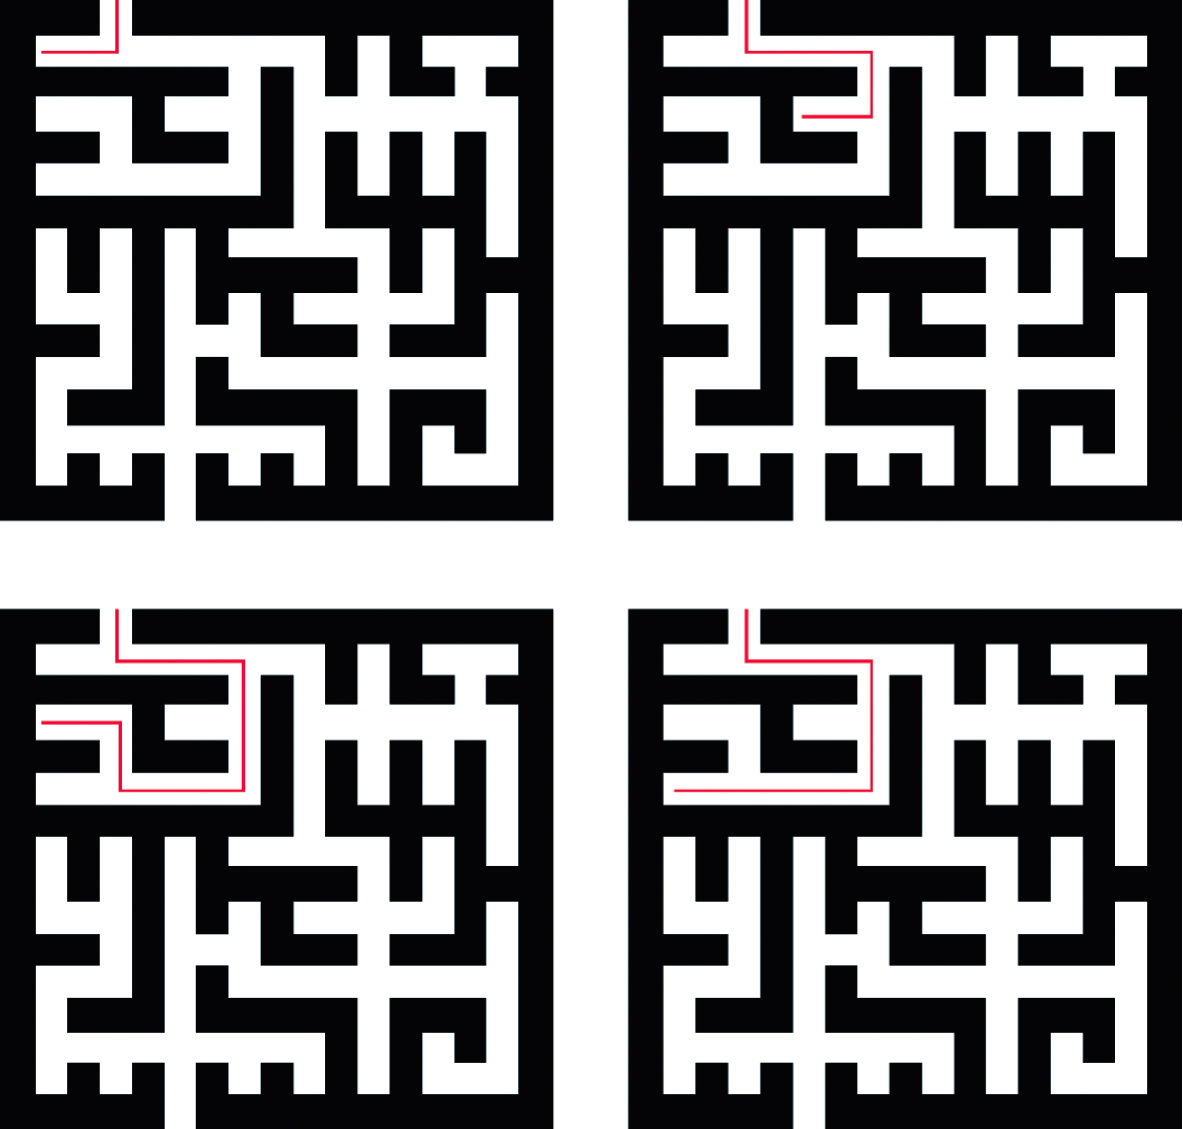 Review of Maze Solving Algorithms for 2D Maze and Their